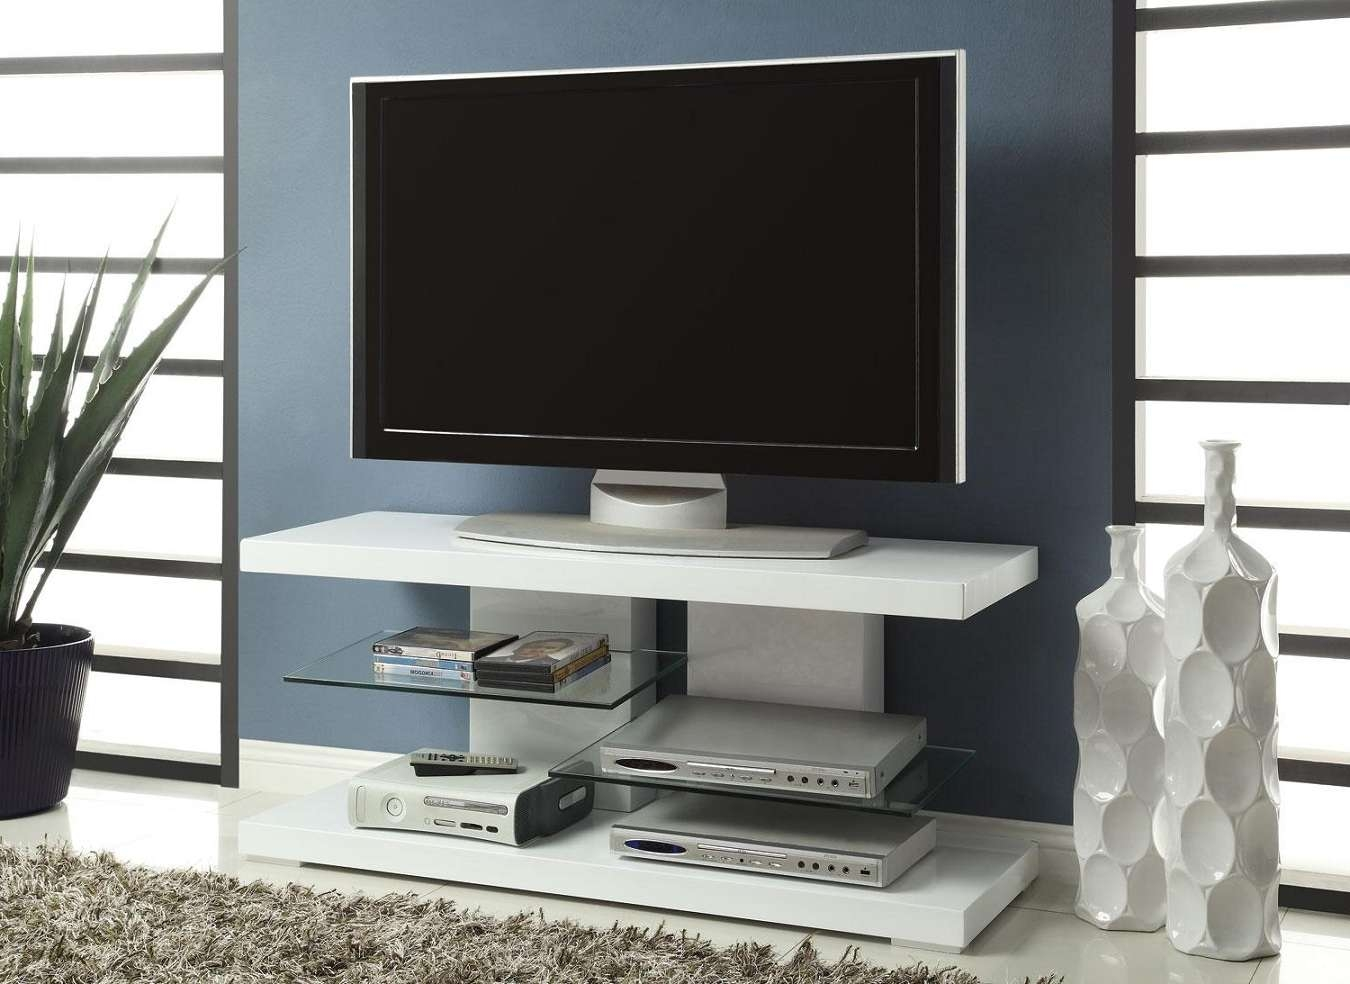 White Painted Plywood Flat Screen Tv Stand With Tempered Glass In Stylish Tv Stands (View 9 of 15)